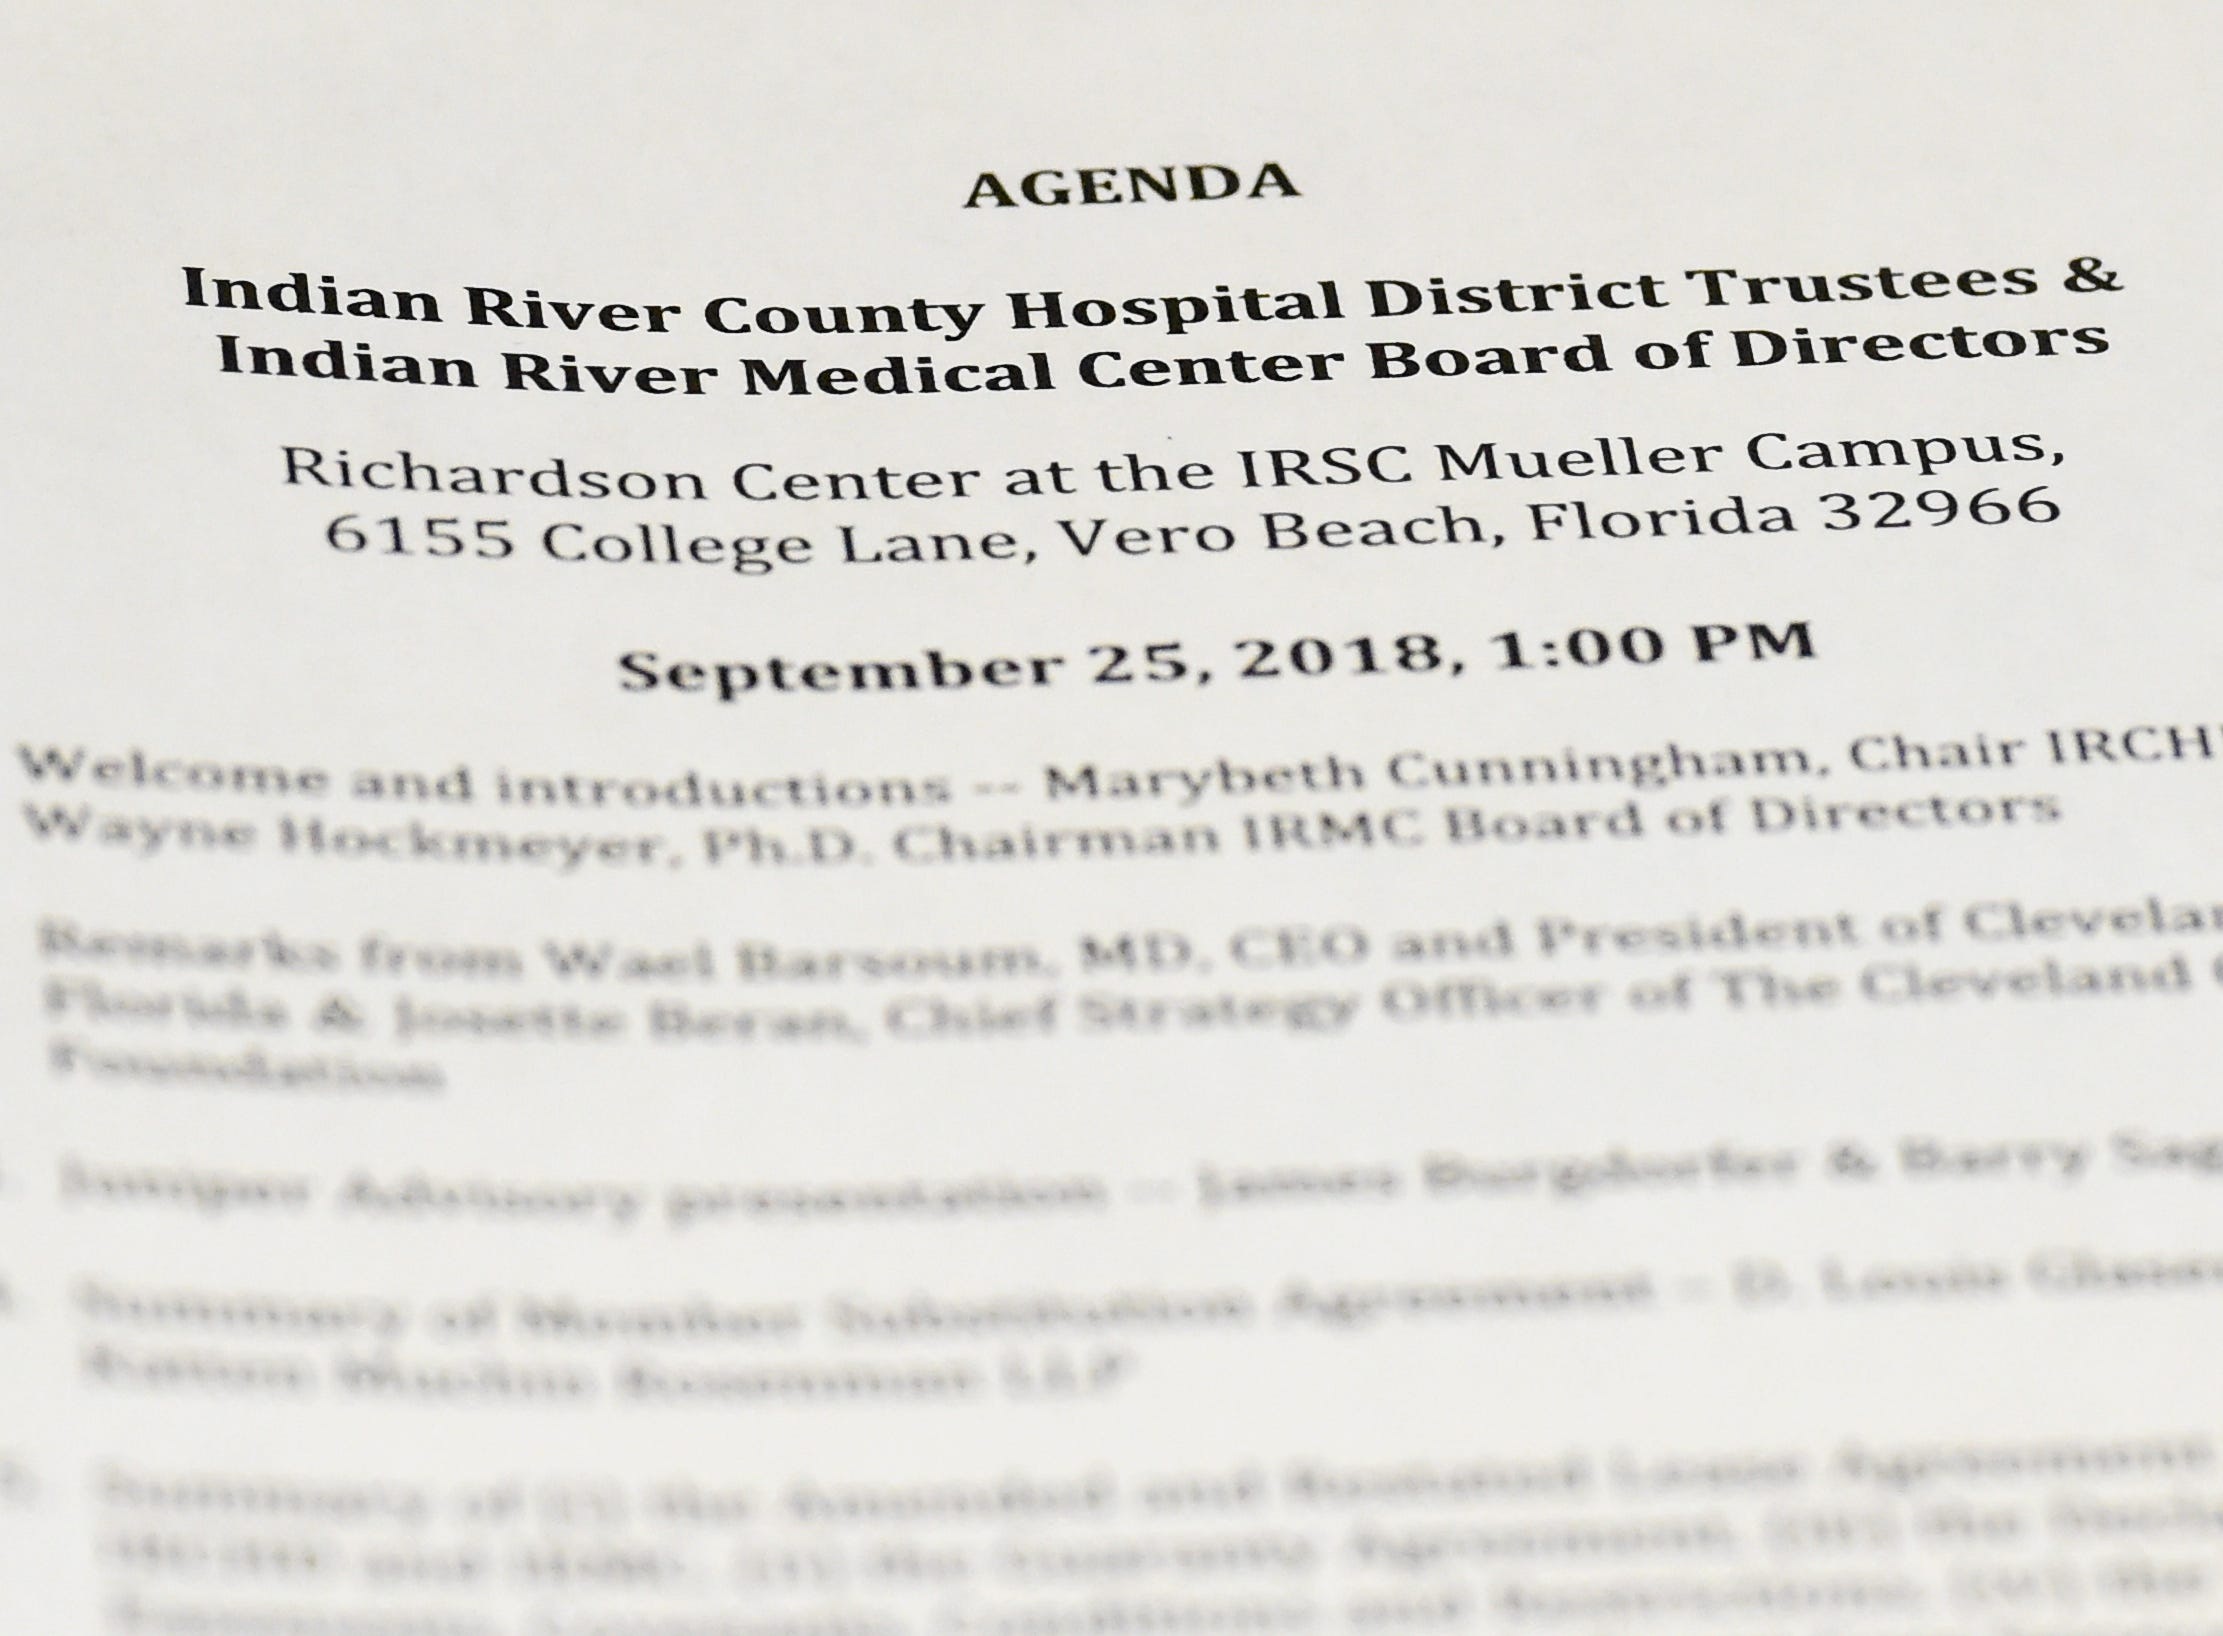 The Indian River Medical Center Board of Directors, Indian River County Hospital District Board of Trustees, representatives of the Cleveland Clinic Foundation, attorneys, and IRC residents met Tuesday, Sept. 25, 2018, to explain and discuss the final stages of a deal involving the Cleveland Clinic's partnership with the Indian River Medical Center at the Richardson Center at Indian River State College's Mueller Campus in Vero Beach.